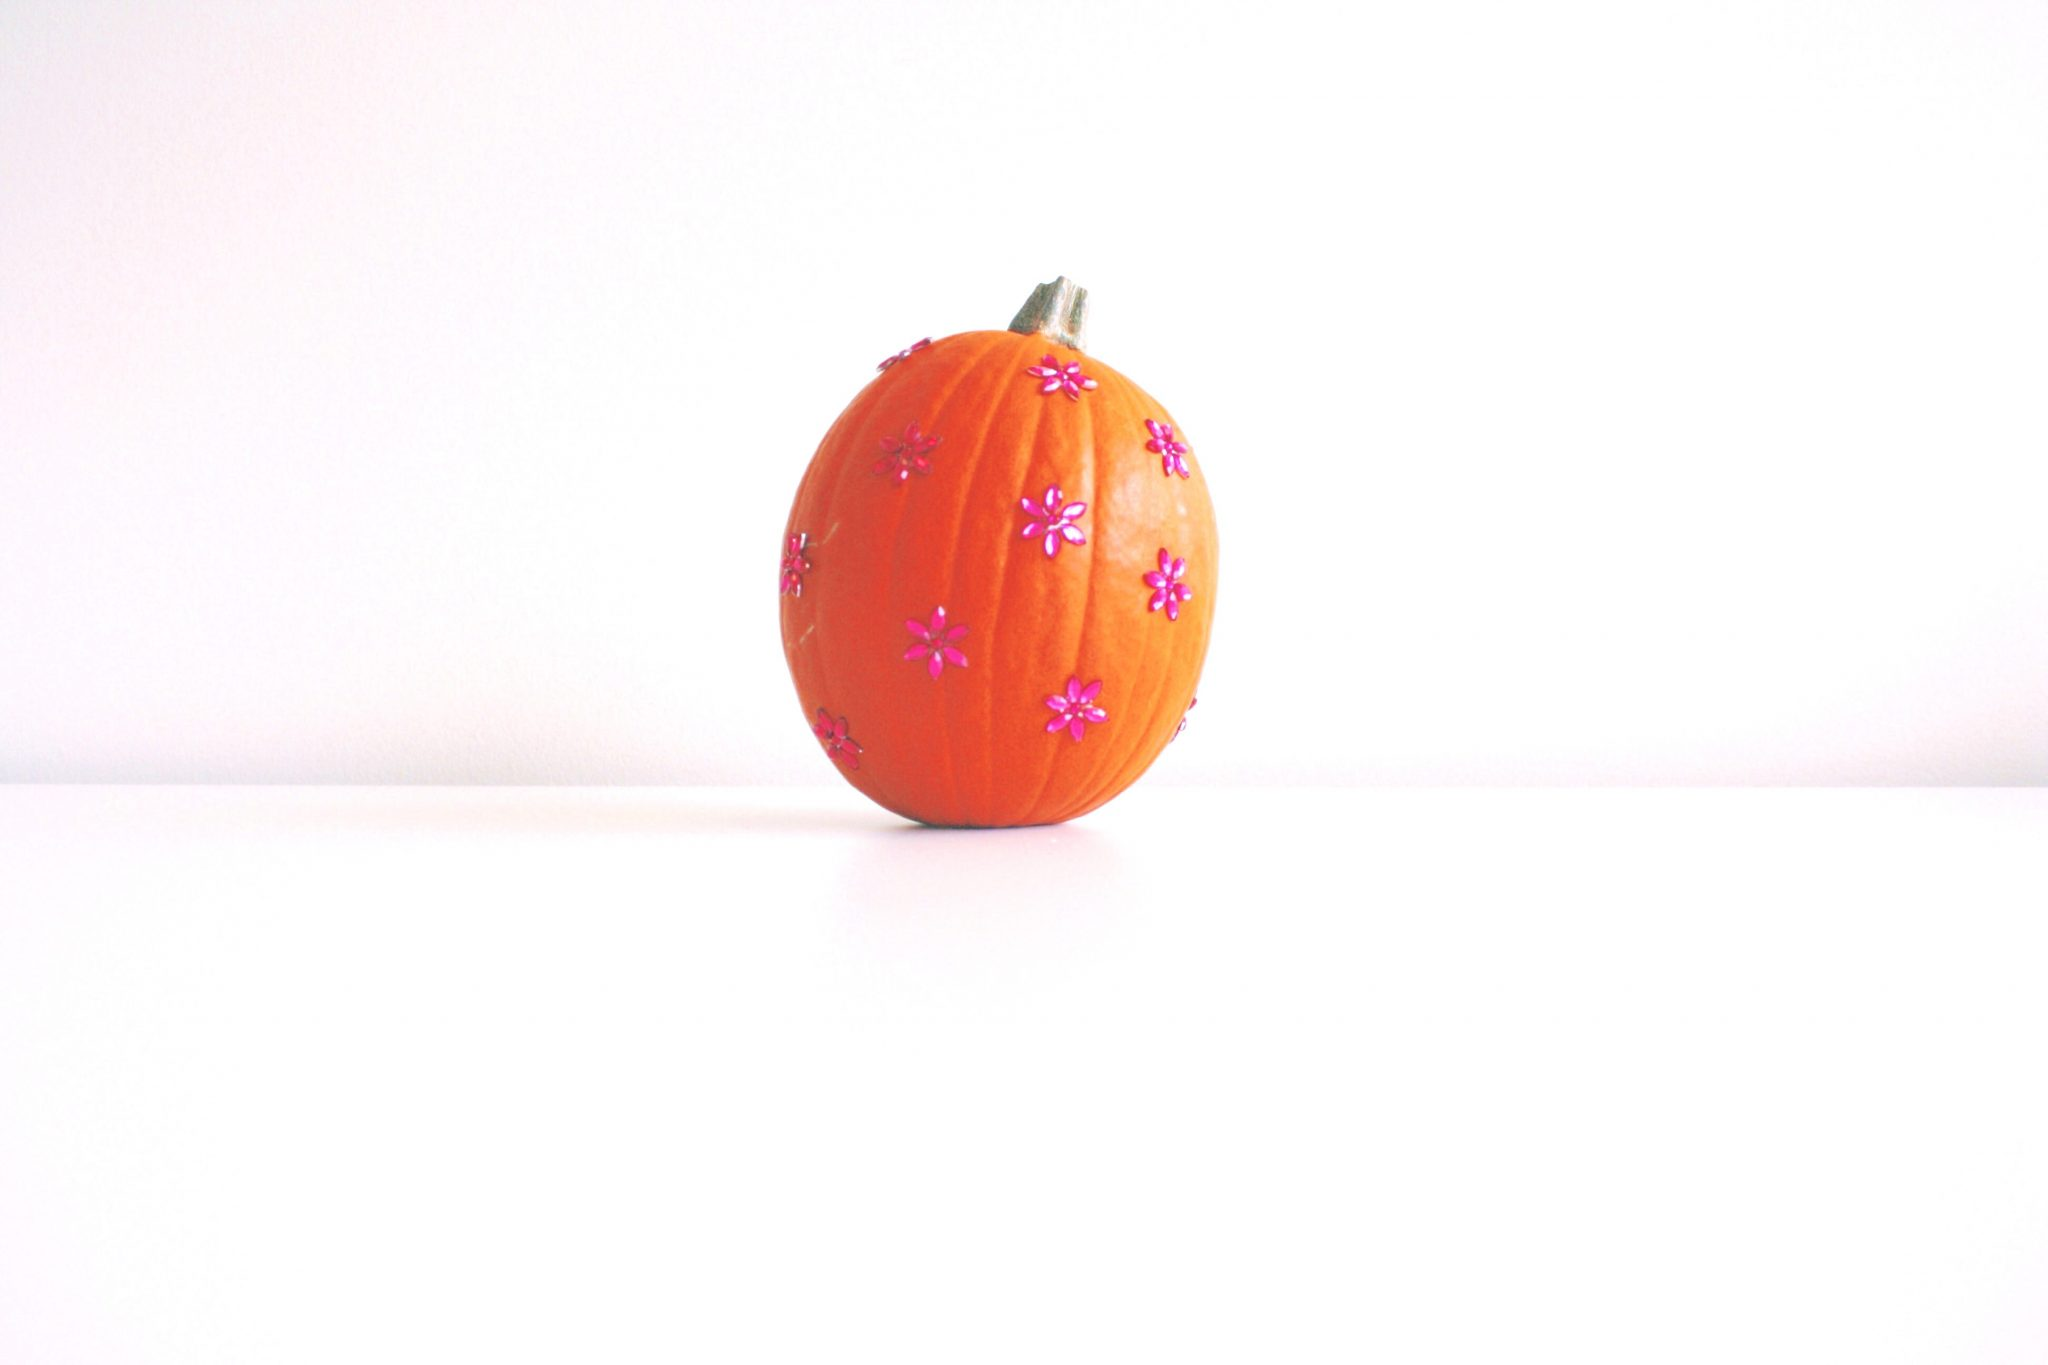 Rhinestone Decorated Halloween Pumpkins